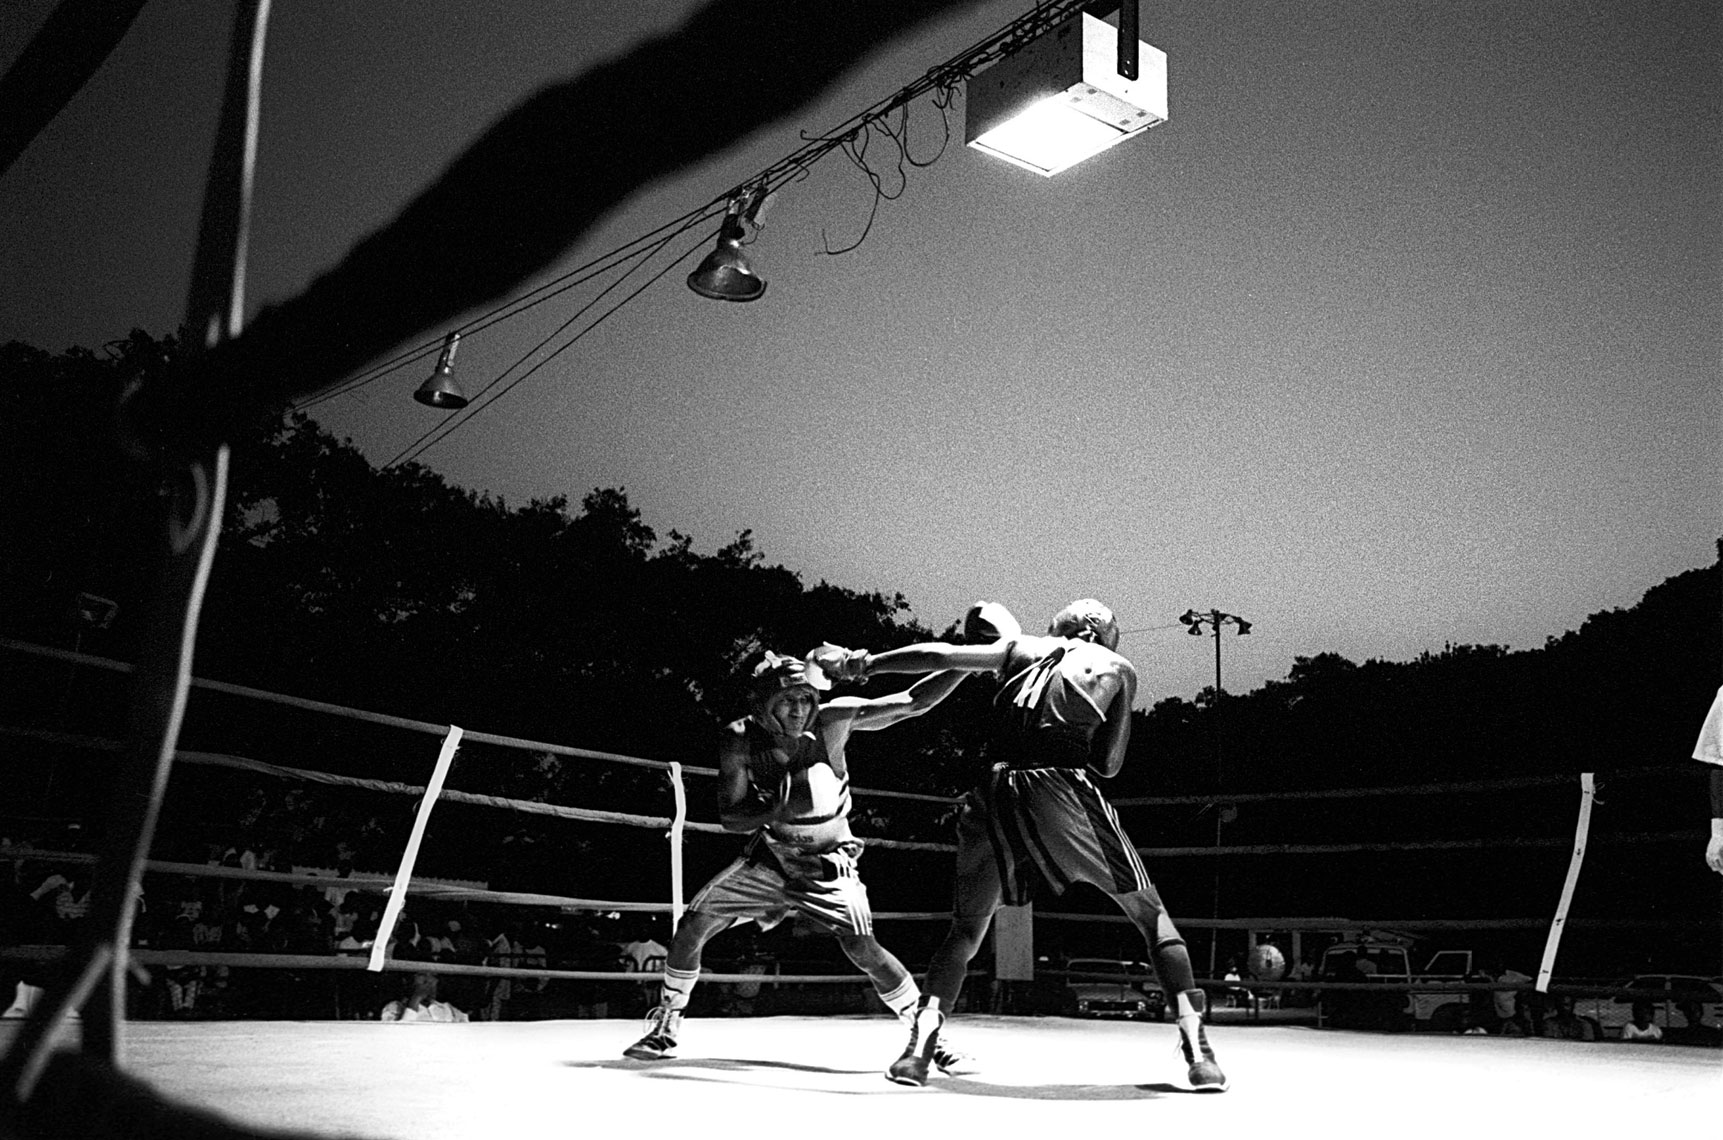 night boxing in Cuba